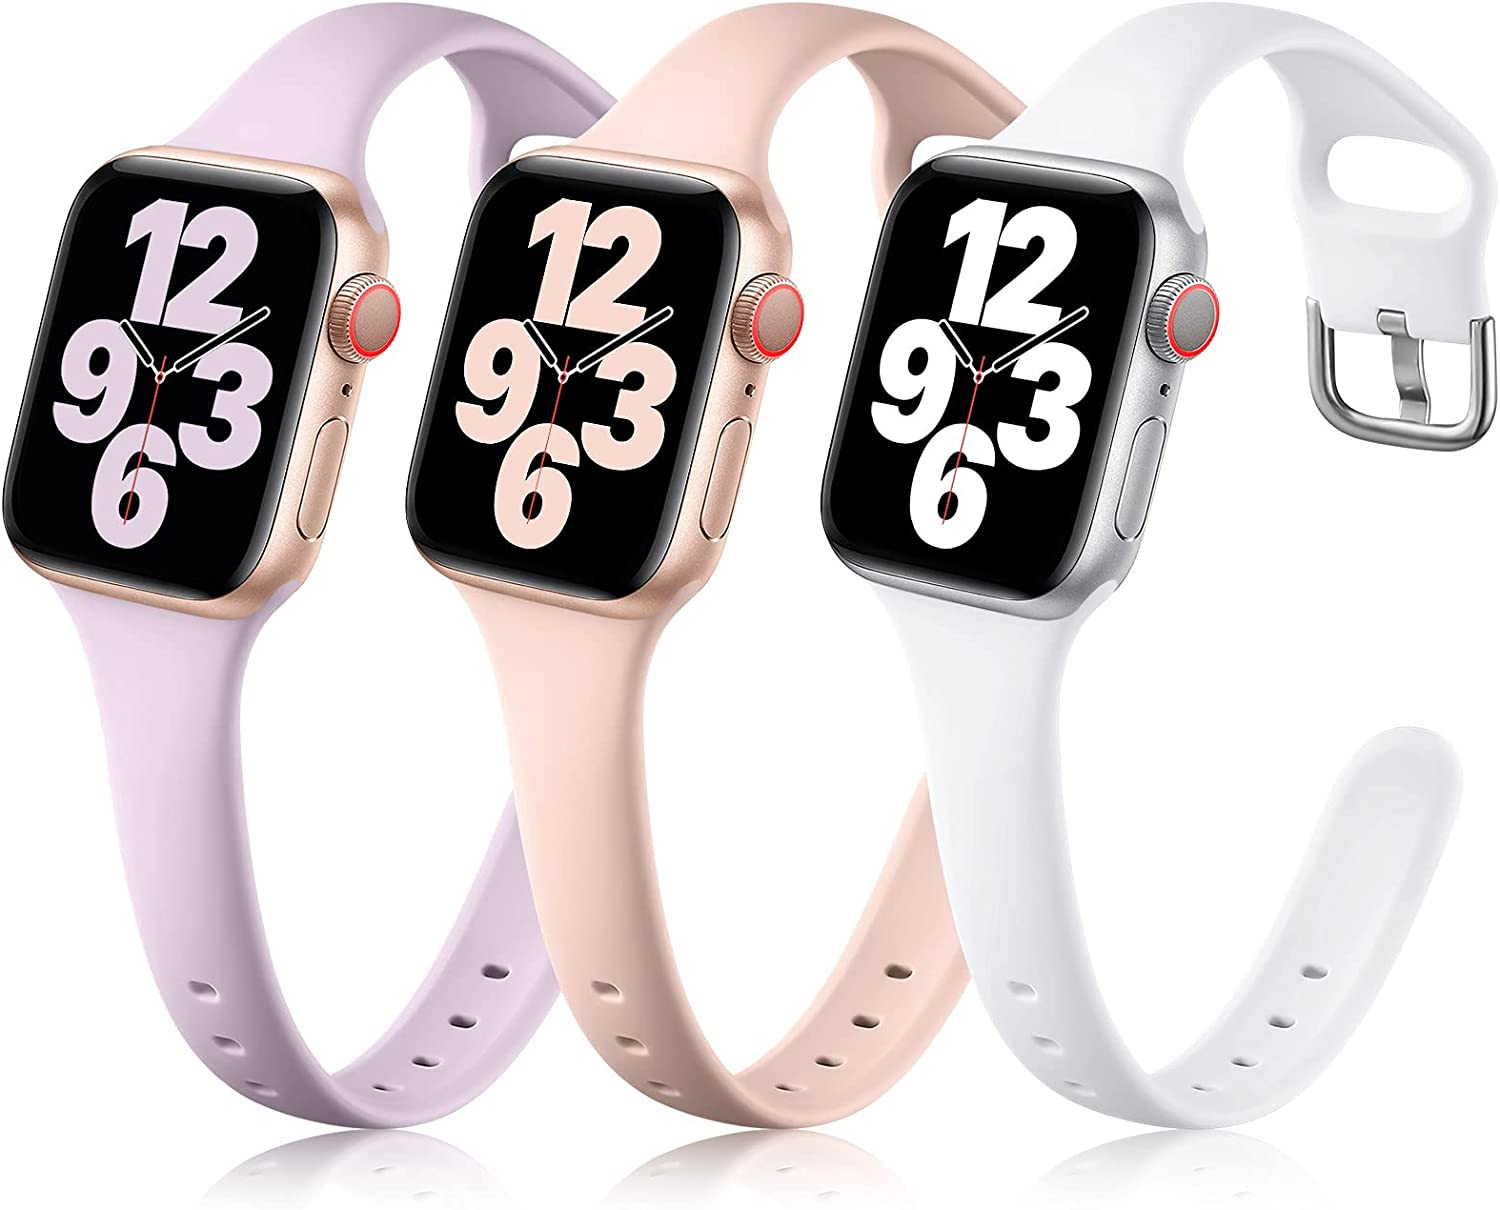 Getino Compatible with Apple Watch Bands 38mm 40mm 42mm 44mm for Women Men, Stylish Slim Silicone Replacement Band for iWatch Series SE 6 5 4 3 2 1 3 Pack, Pink/ Lavender/ White 42/44mm